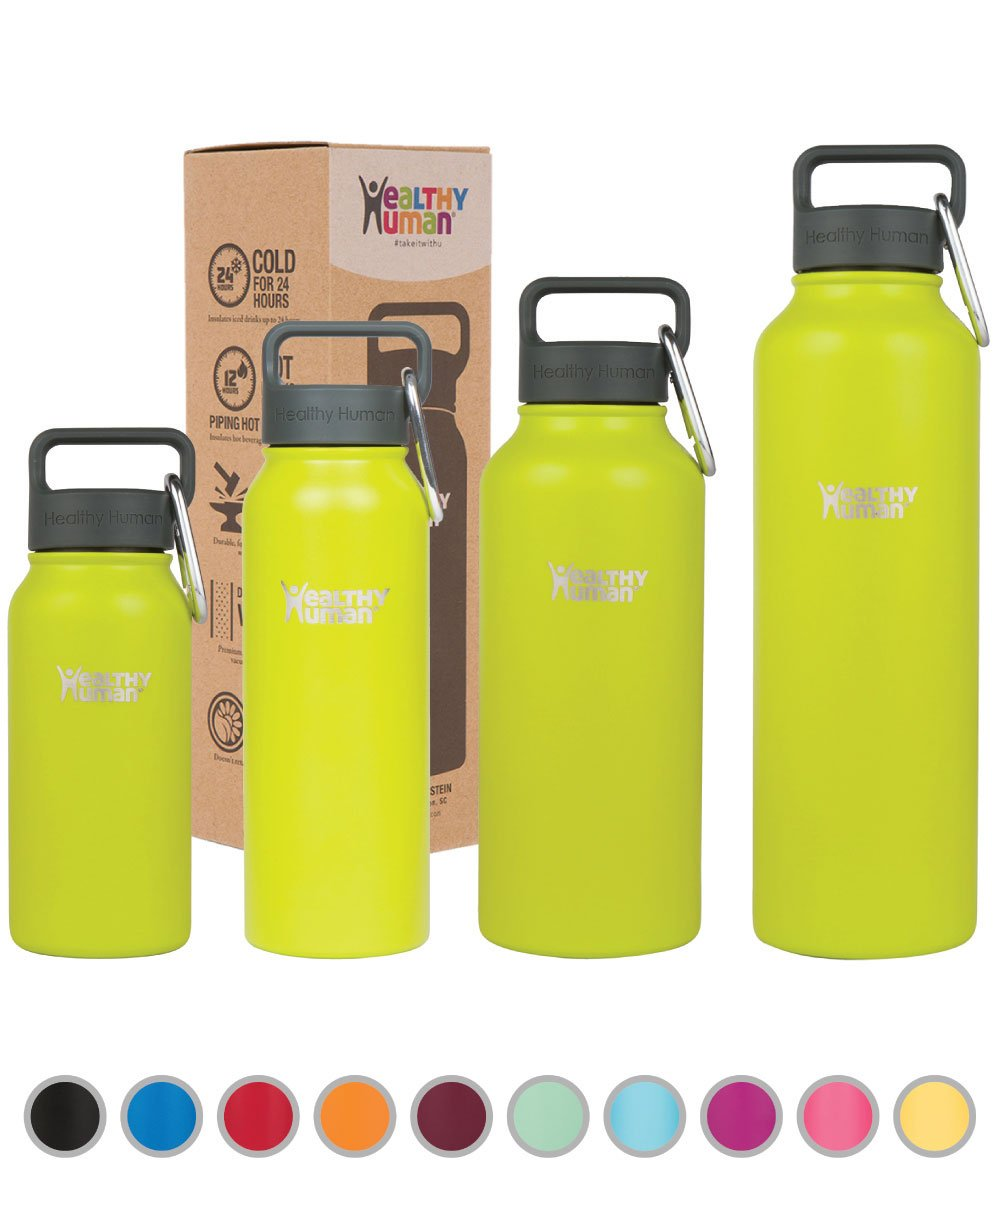 Healthy Human Insulated Stainless Steel Water Bottle Stein - Cold 24 Hrs/Hot 12 Hrs - Double Walled Vacuum Thermos Flask with Hydro Guide & Carabiner - 40 oz Mojito